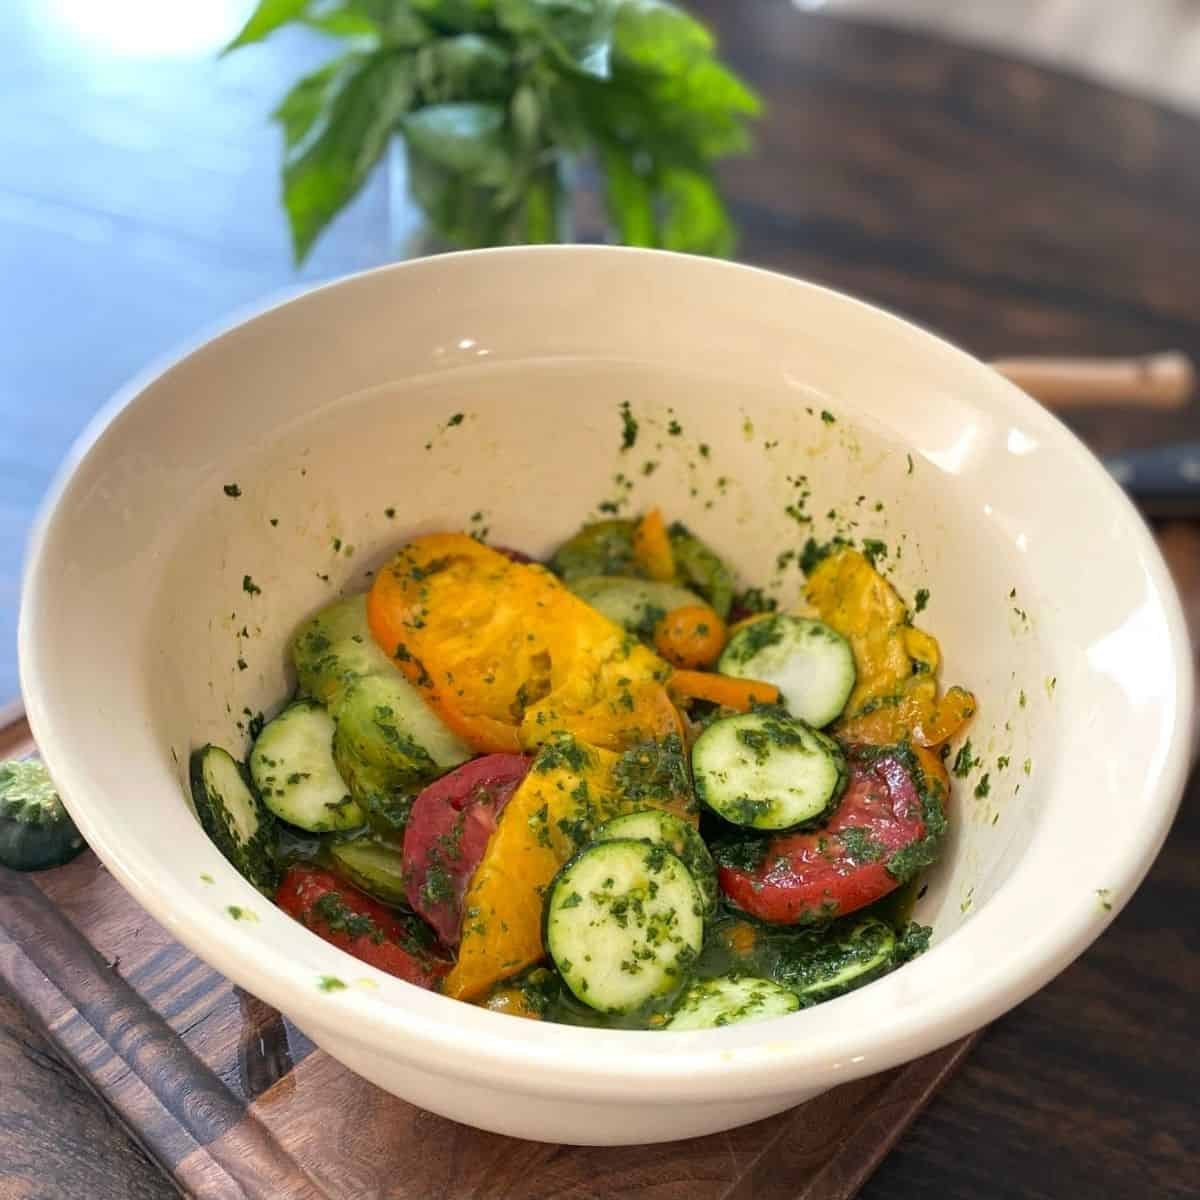 bowl of veggies tossed with herb mixture